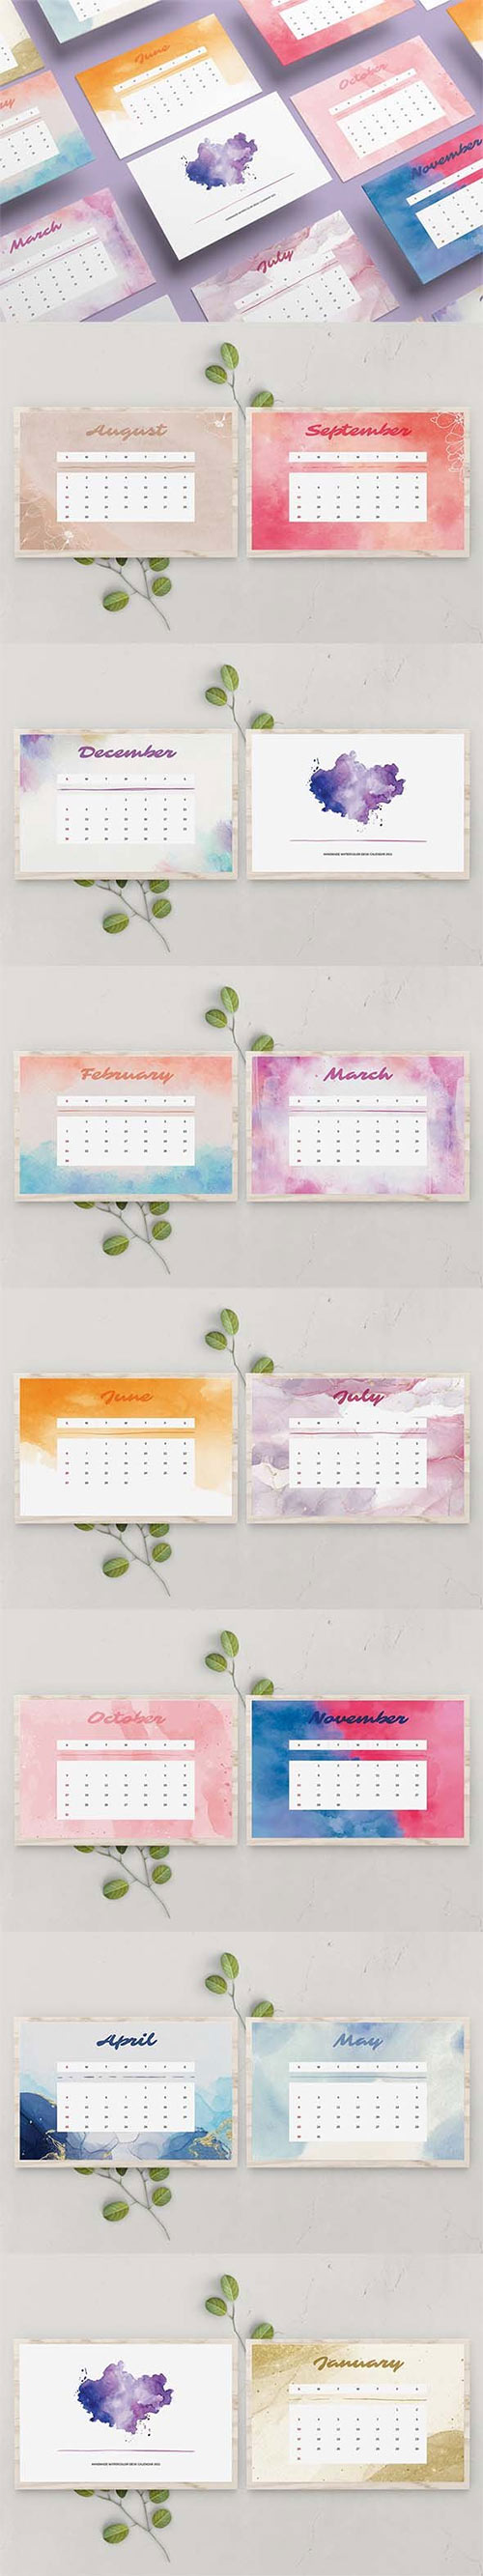 Handmade Watercolor Calendar 2021